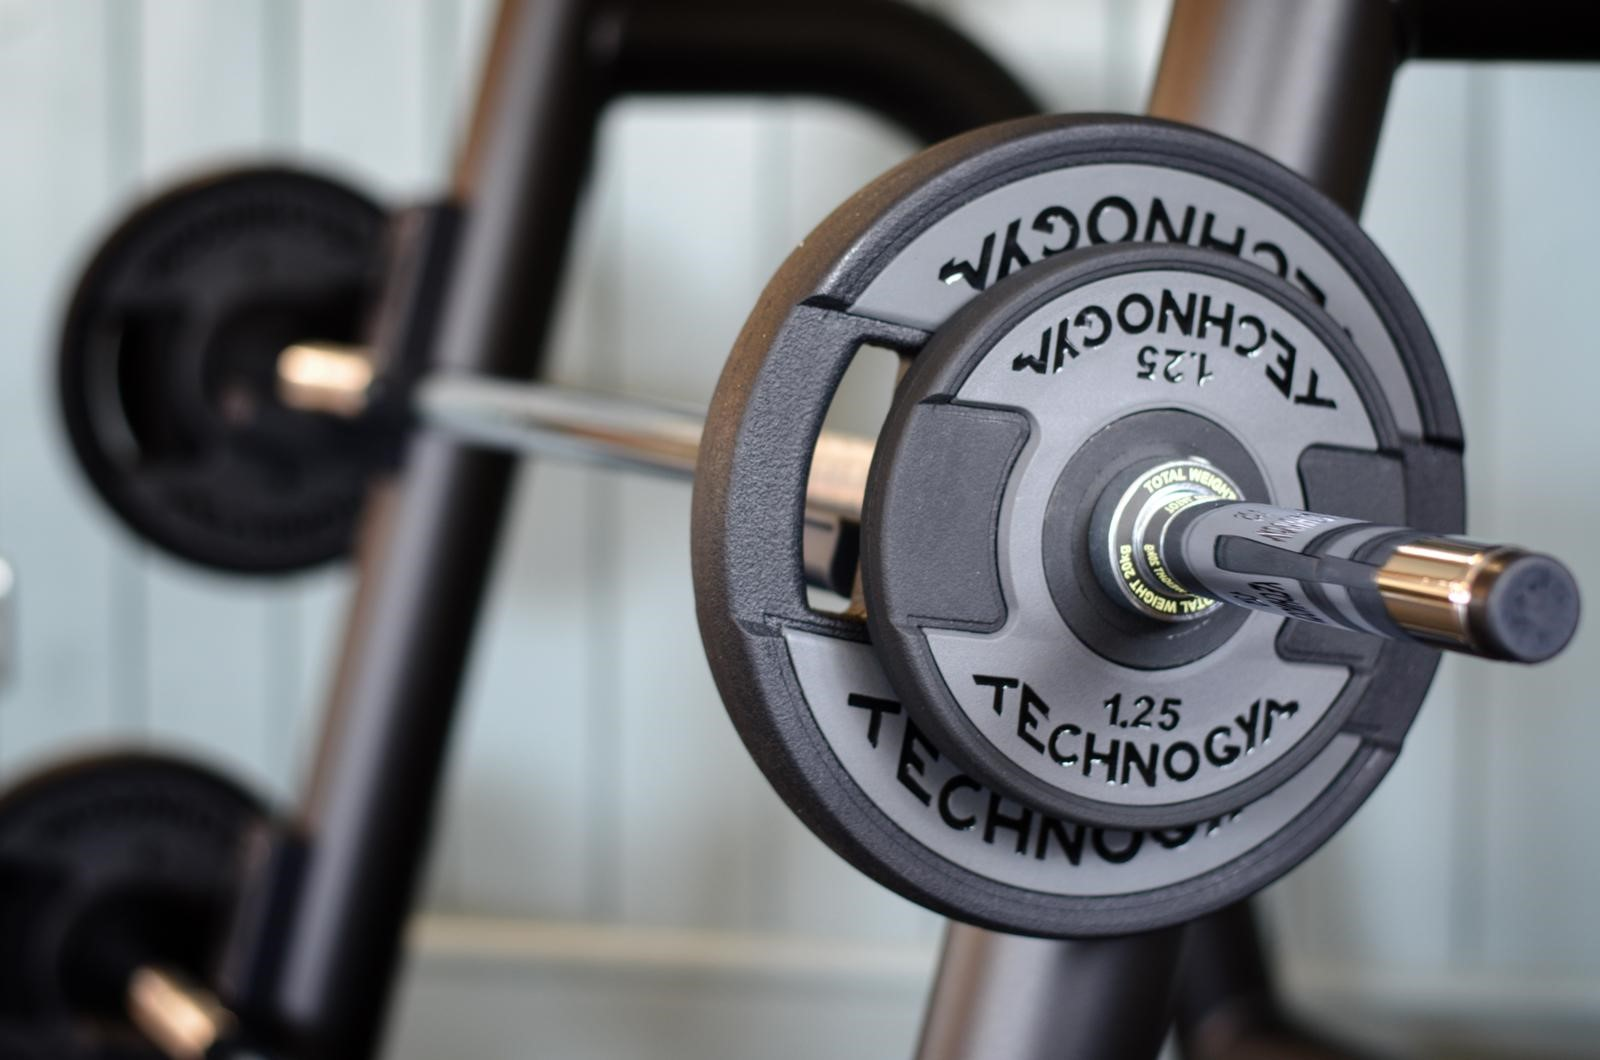 NEW GYM EQUIPMENT WORKS OUT WELL AT THE MANOR HOUSE